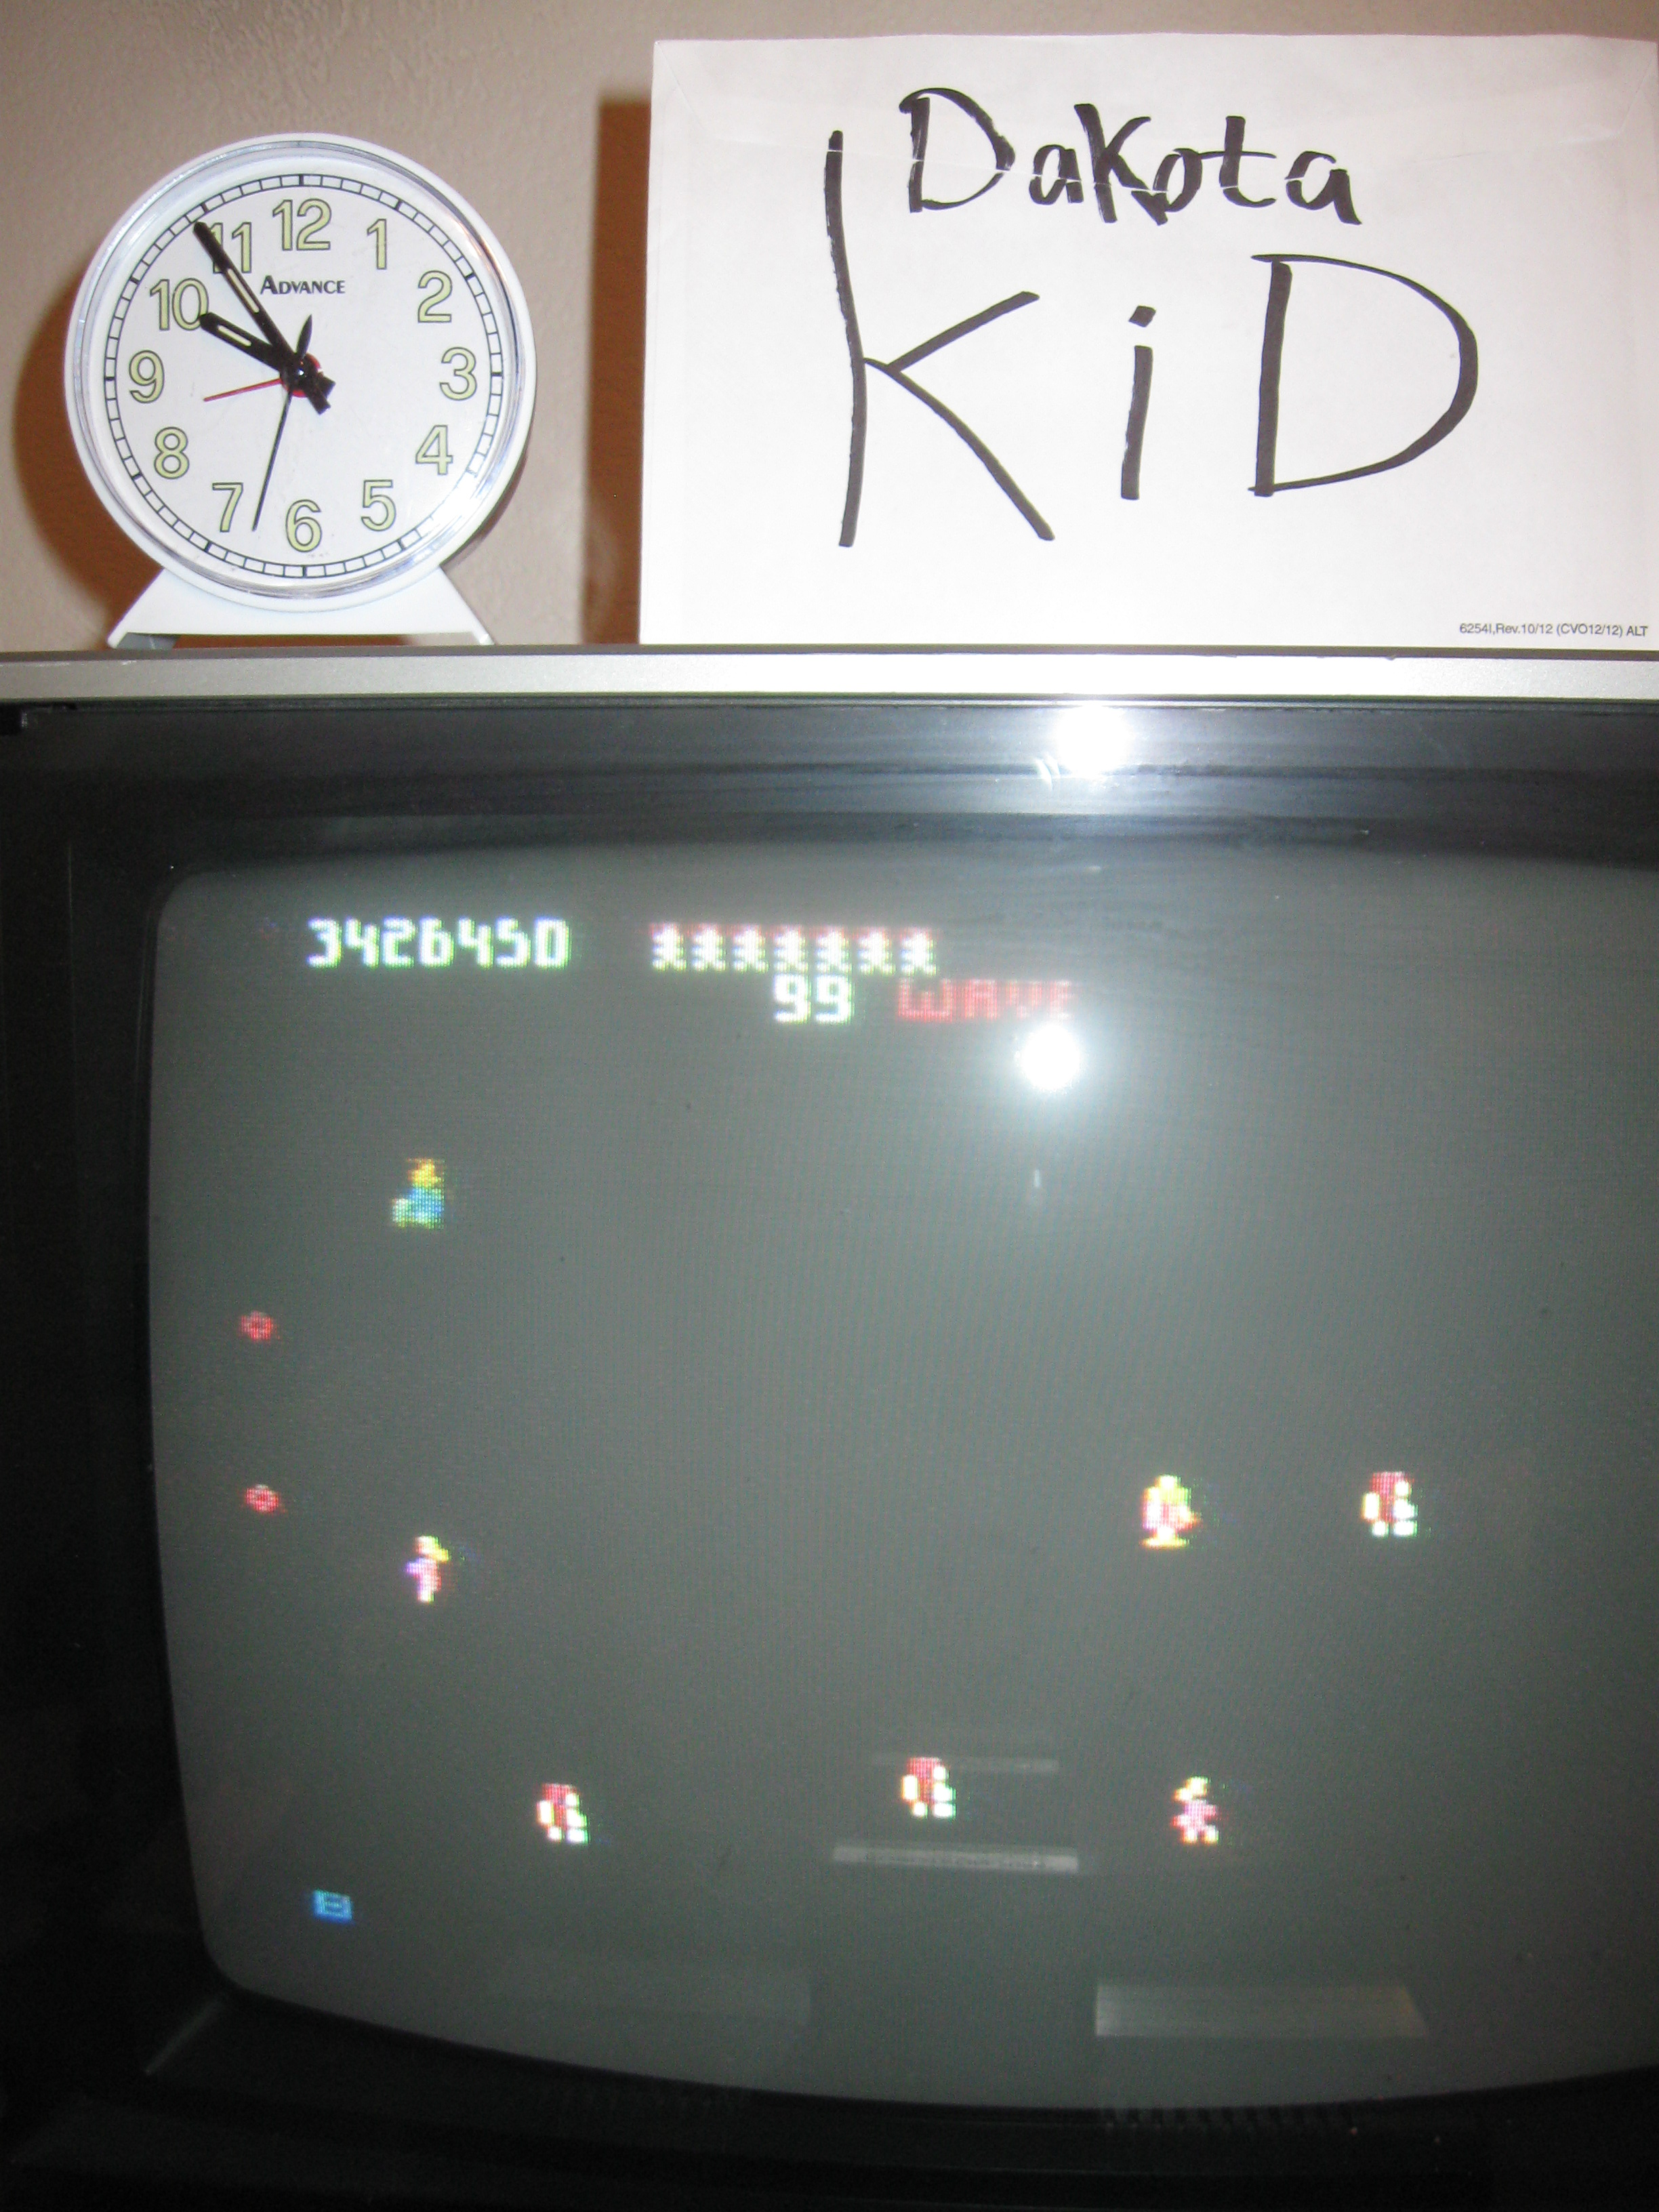 DakotaKid: Robotron 2084: Novice (Atari 7800) 4,017,325 points on 2016-04-12 19:29:16